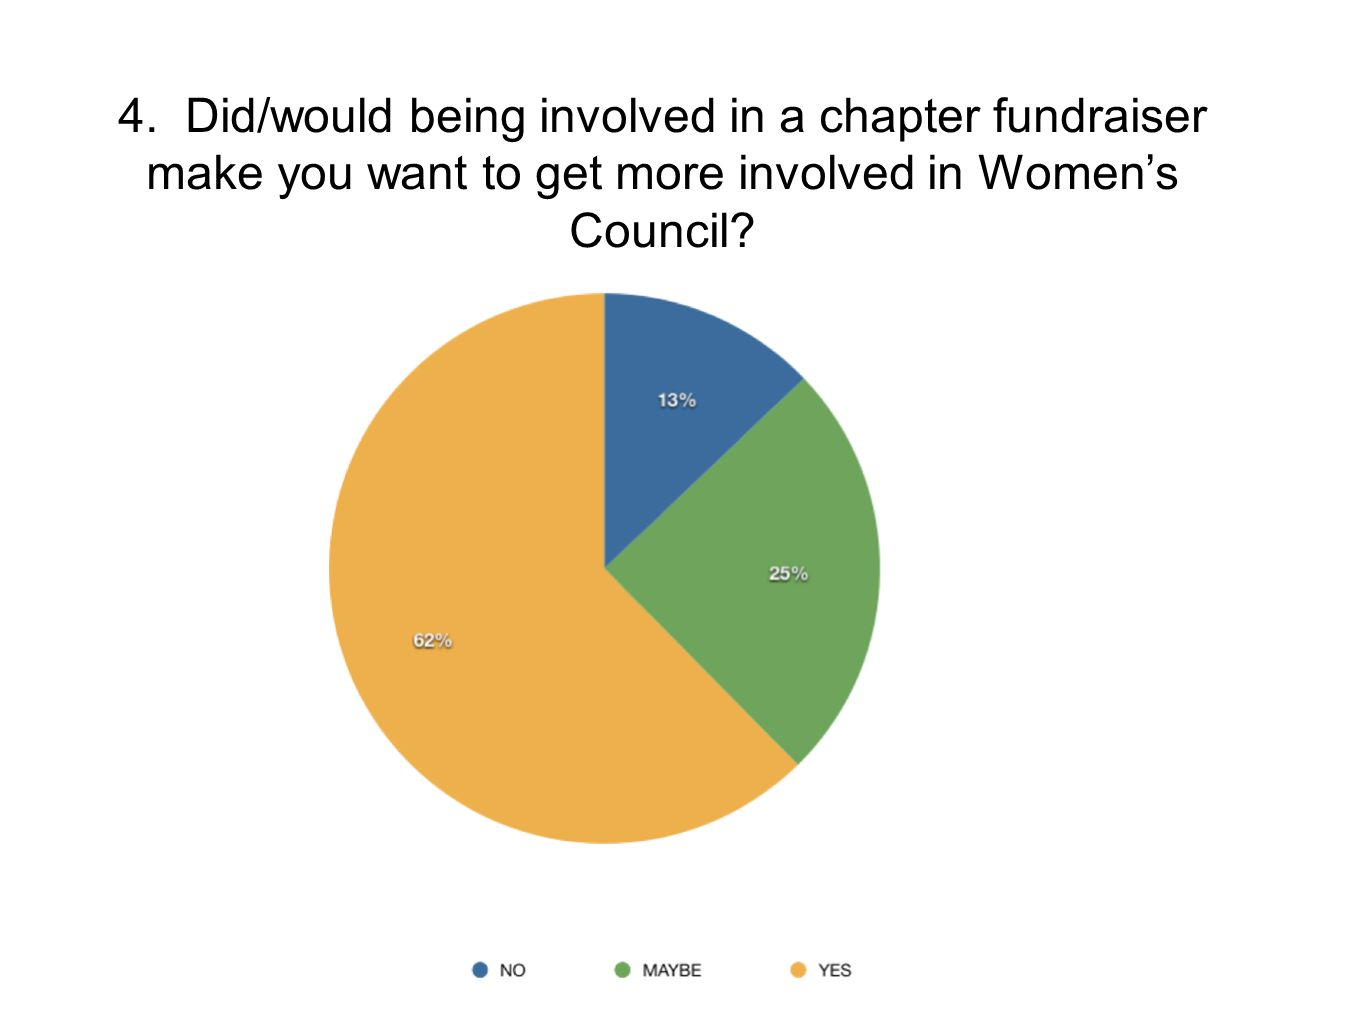 4. Did/would being involved in a chapter fundraiser make you want to get more involved in Women's Council?